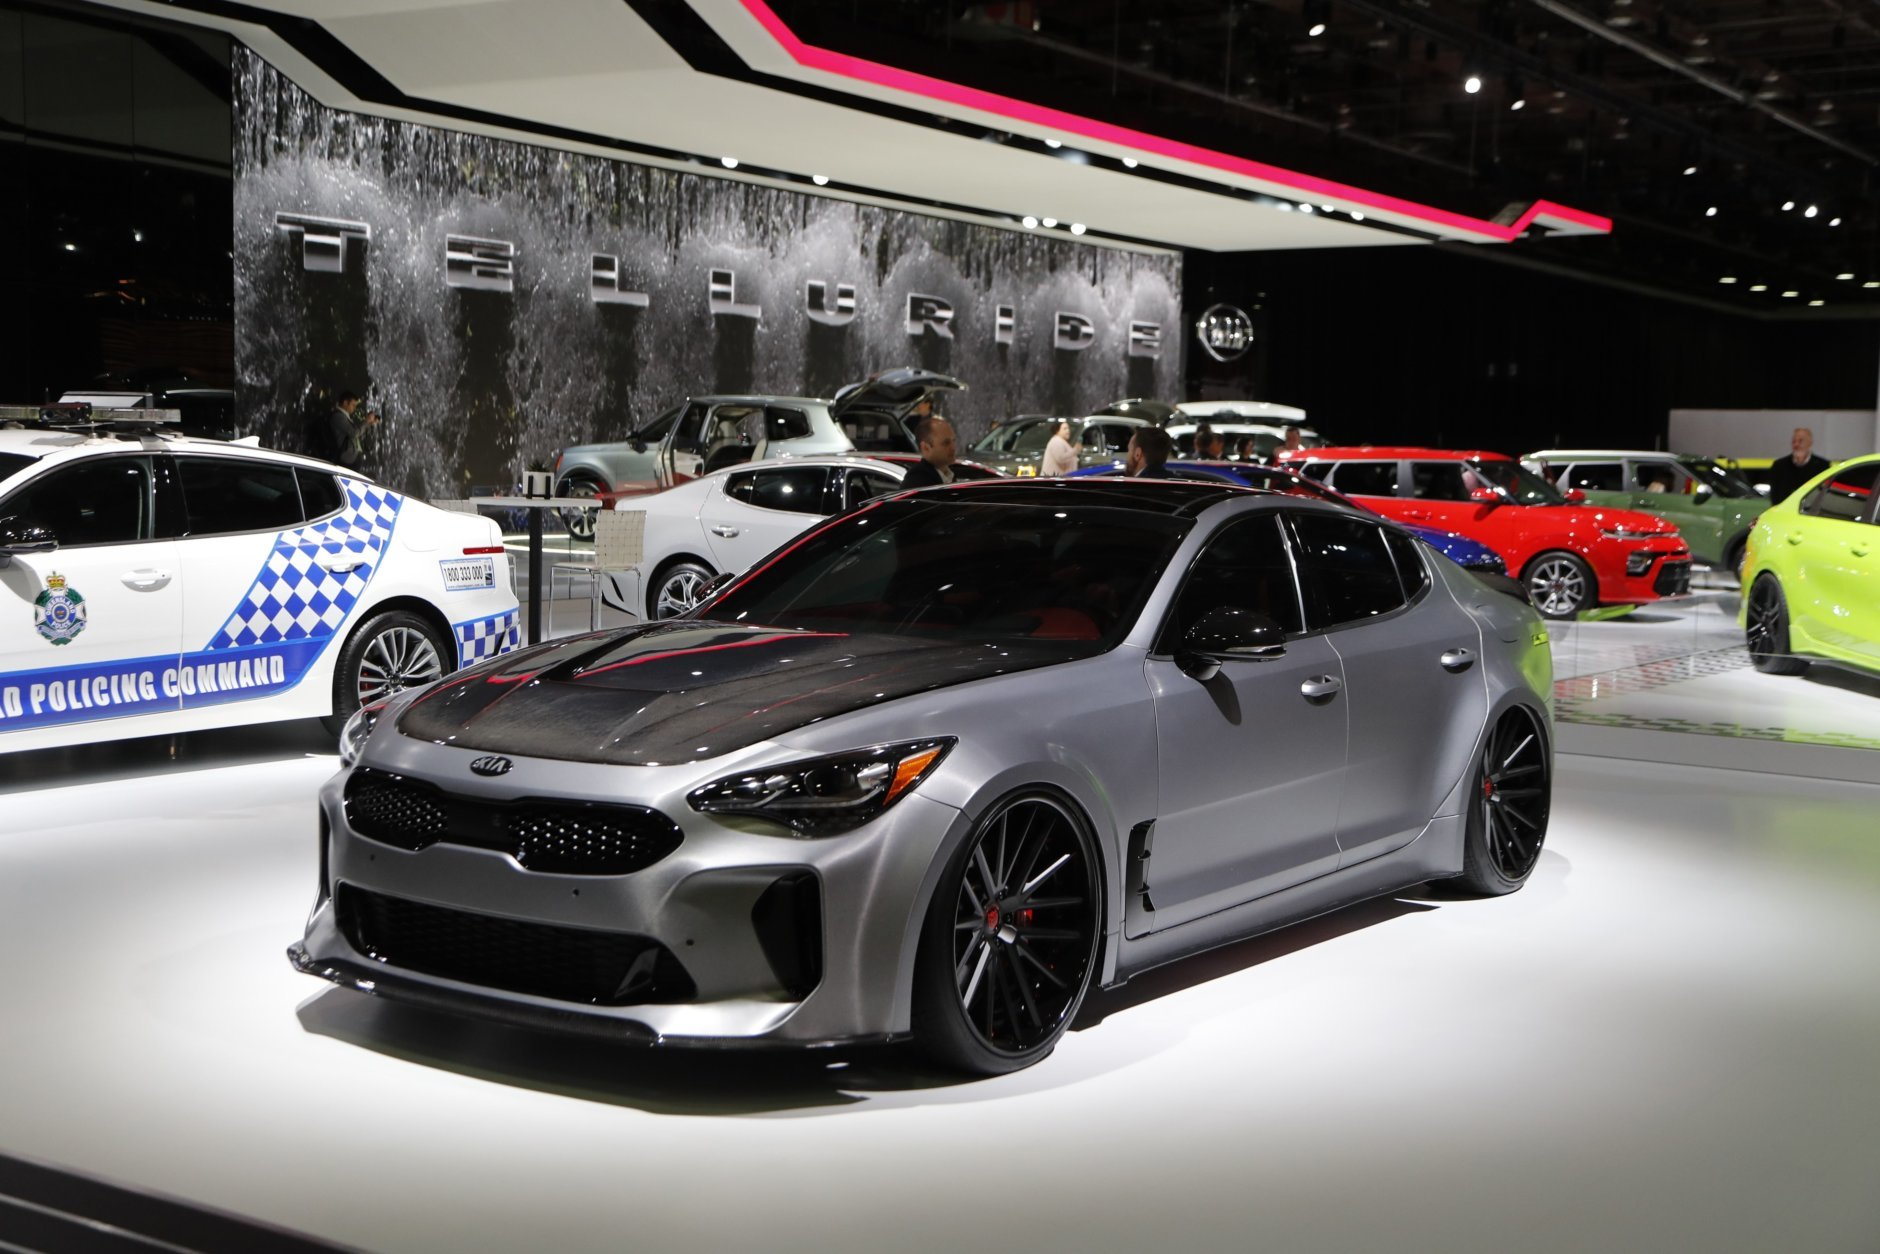 "<p>Kia is offering 0% financing for 75 months on the <a href=""https://cars.usnews.com/cars-trucks/kia/stinger?utm_source=press&amp;utm_medium=releaselinks&amp;utm_campaign=deals"" target=""_blank"" rel=""noopener"">2019 Kia Stinger</a>.</p>"